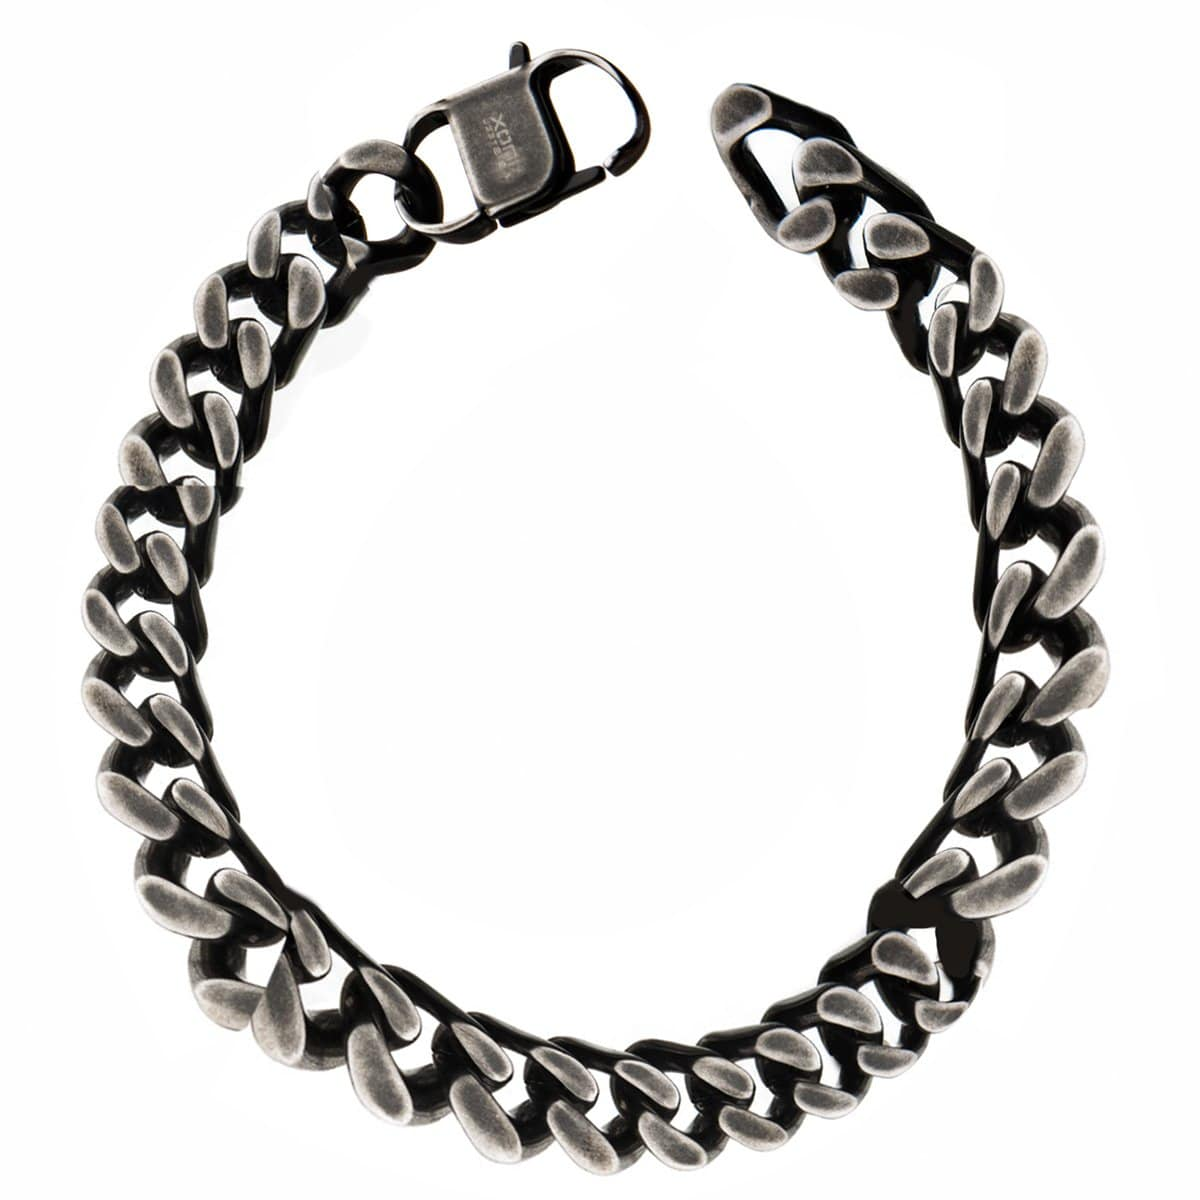 Silver Stainless Steel Oxidized Finish 13mm Diamond Cut Link Chain Bracelet